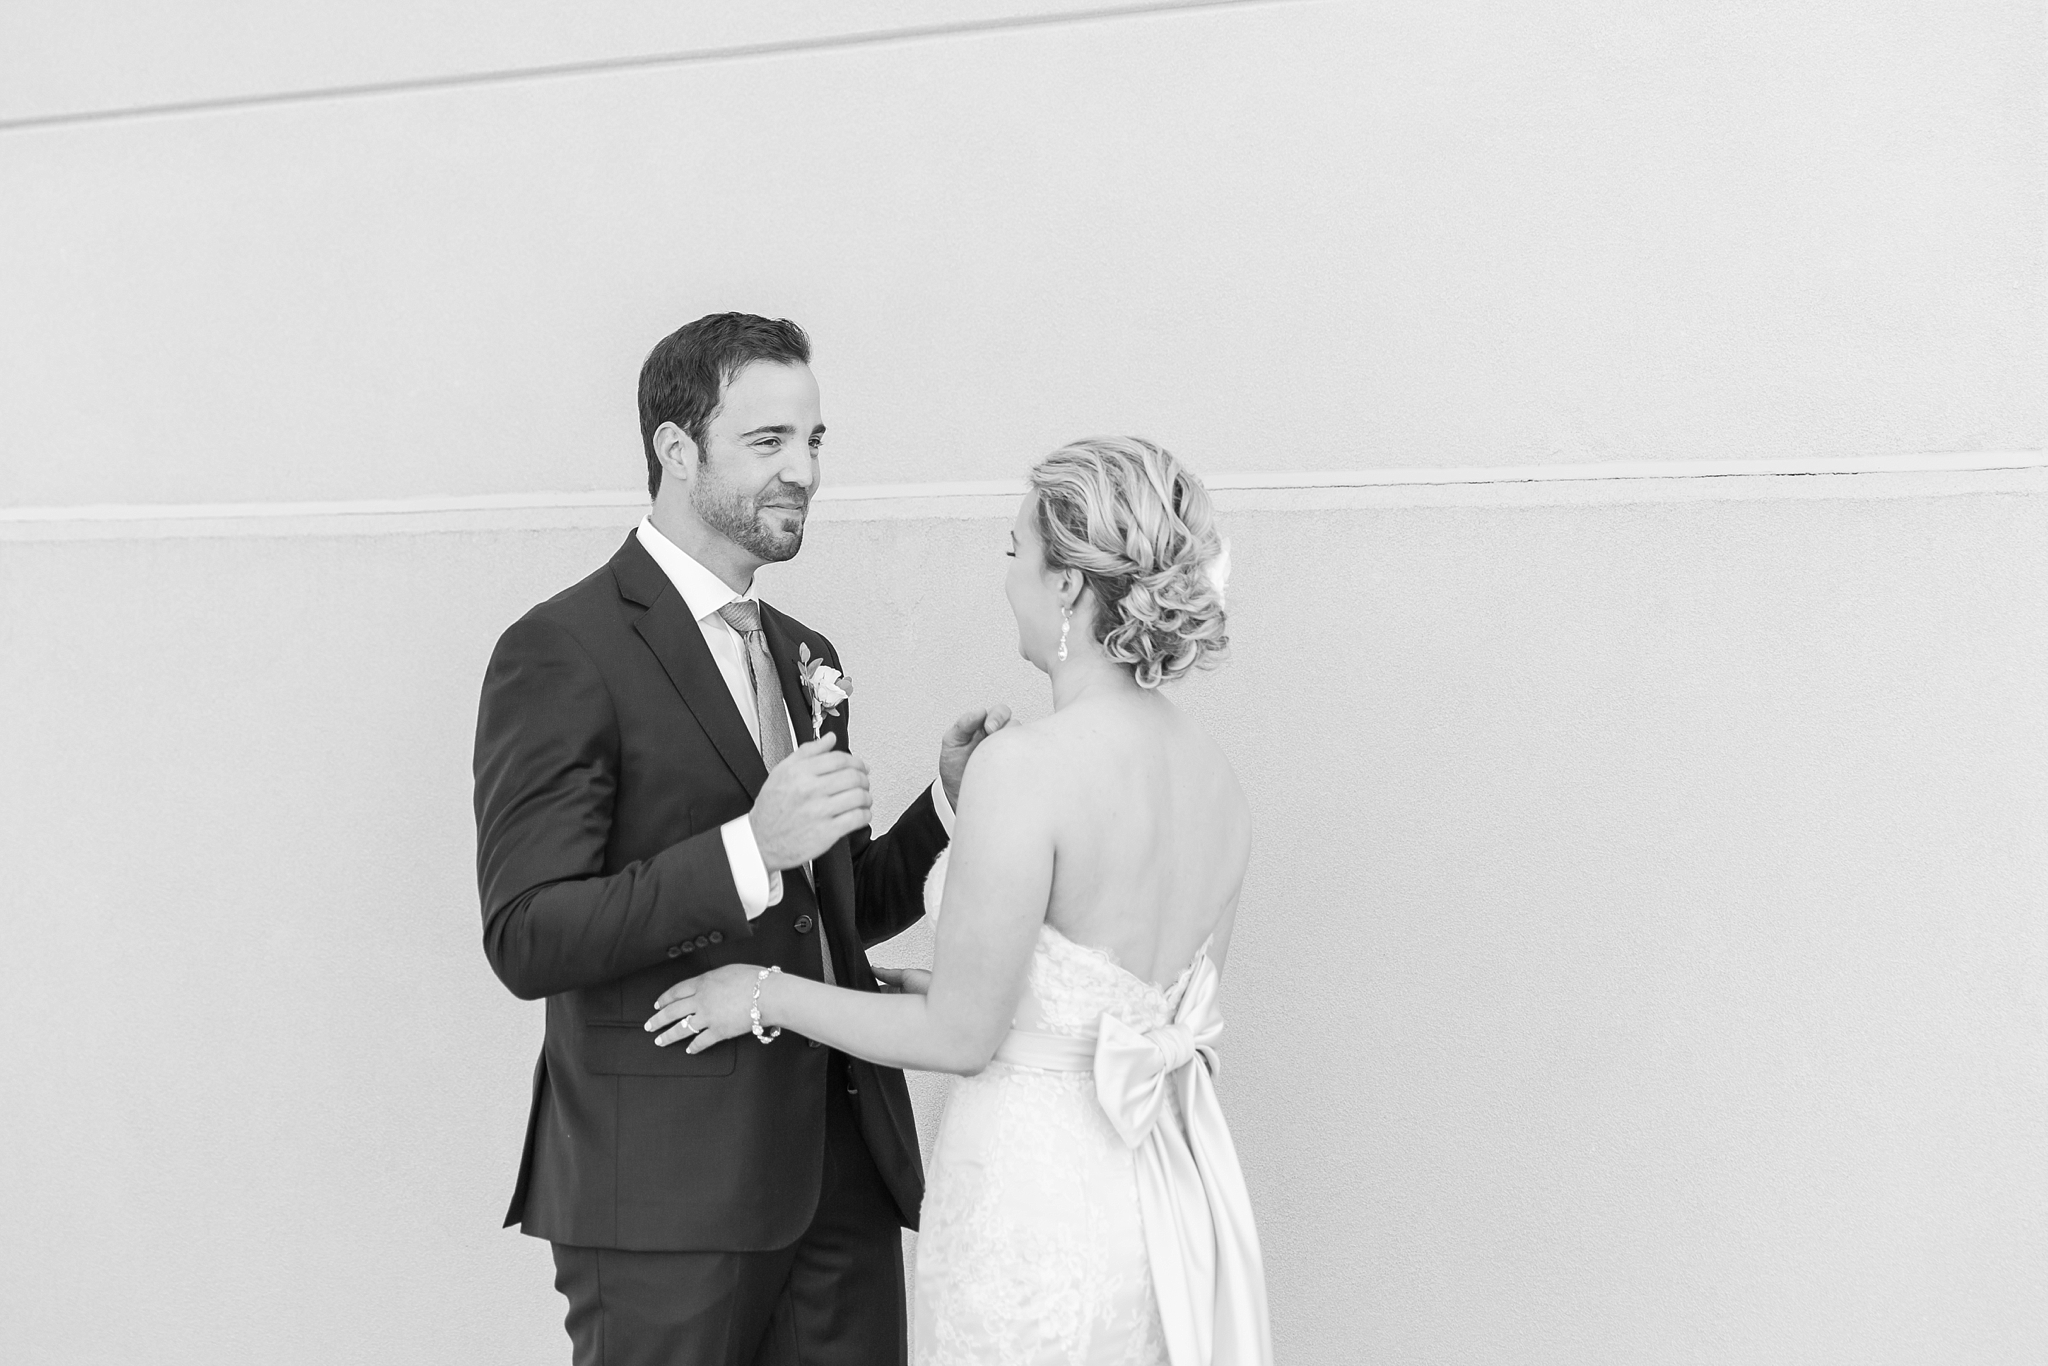 fun-candid-laid-back-wedding-photos-at-wellers-carriage-house-in-saline-michigan-and-at-the-eagle-crest-golf-resort-by-courtney-carolyn-photography_0021.jpg